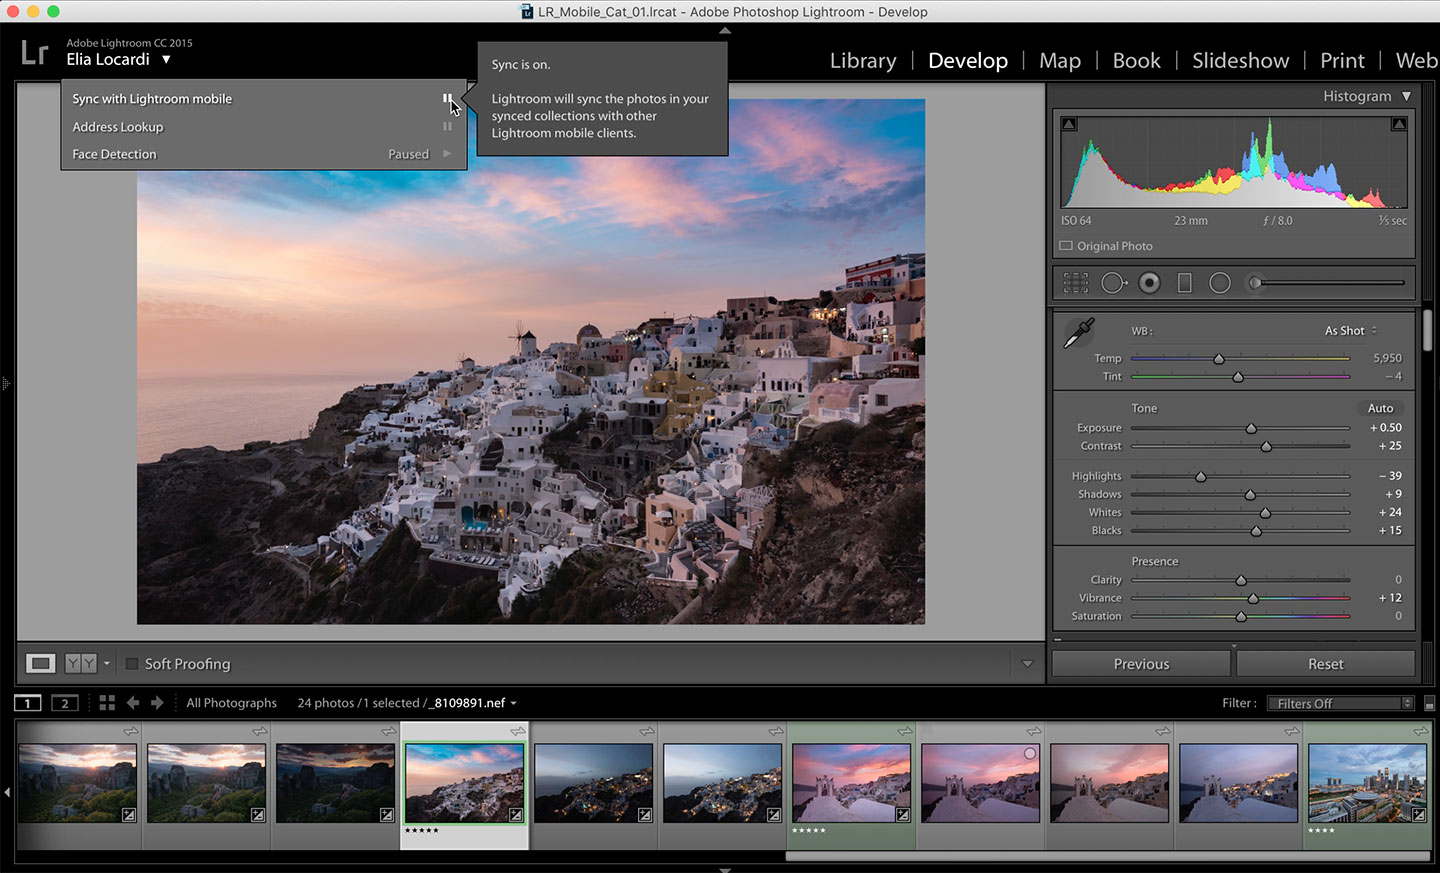 Lightroom-Desktop-Sync-to-Lightroom-Mobile